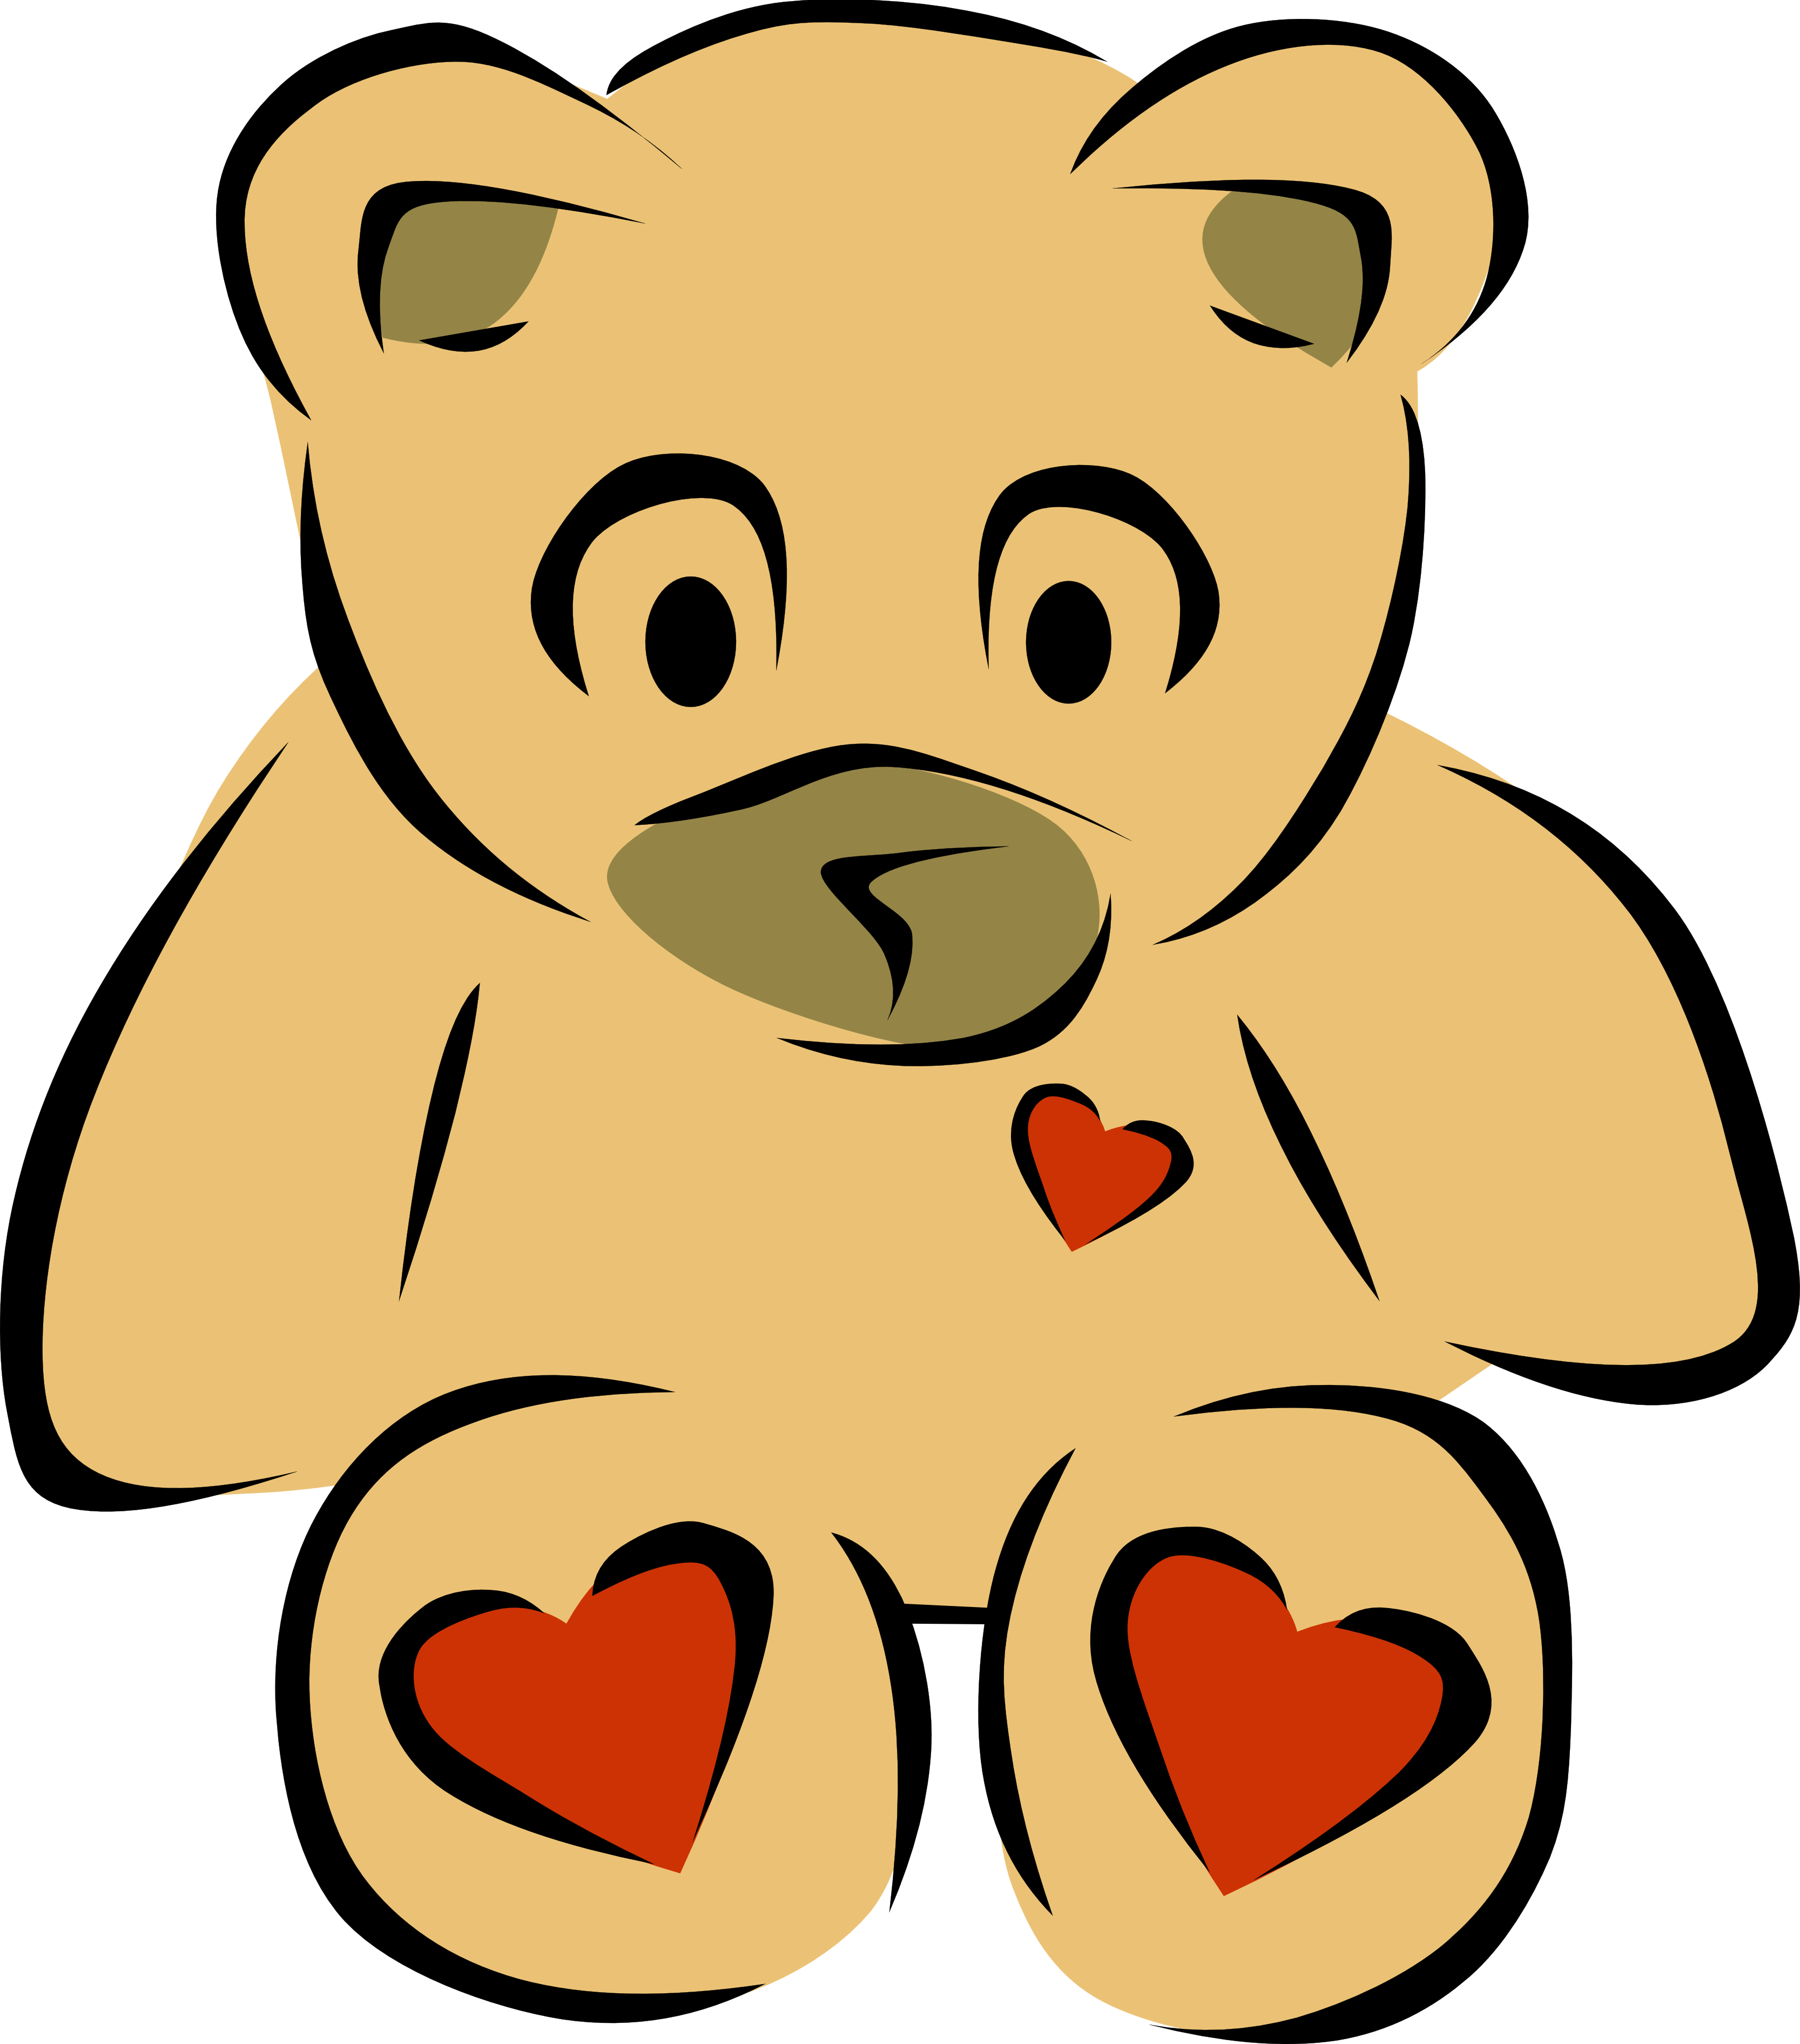 Heart bear clipart banner library download Teddy Bear Clipart Heart | Clipart Panda - Free Clipart Images banner library download